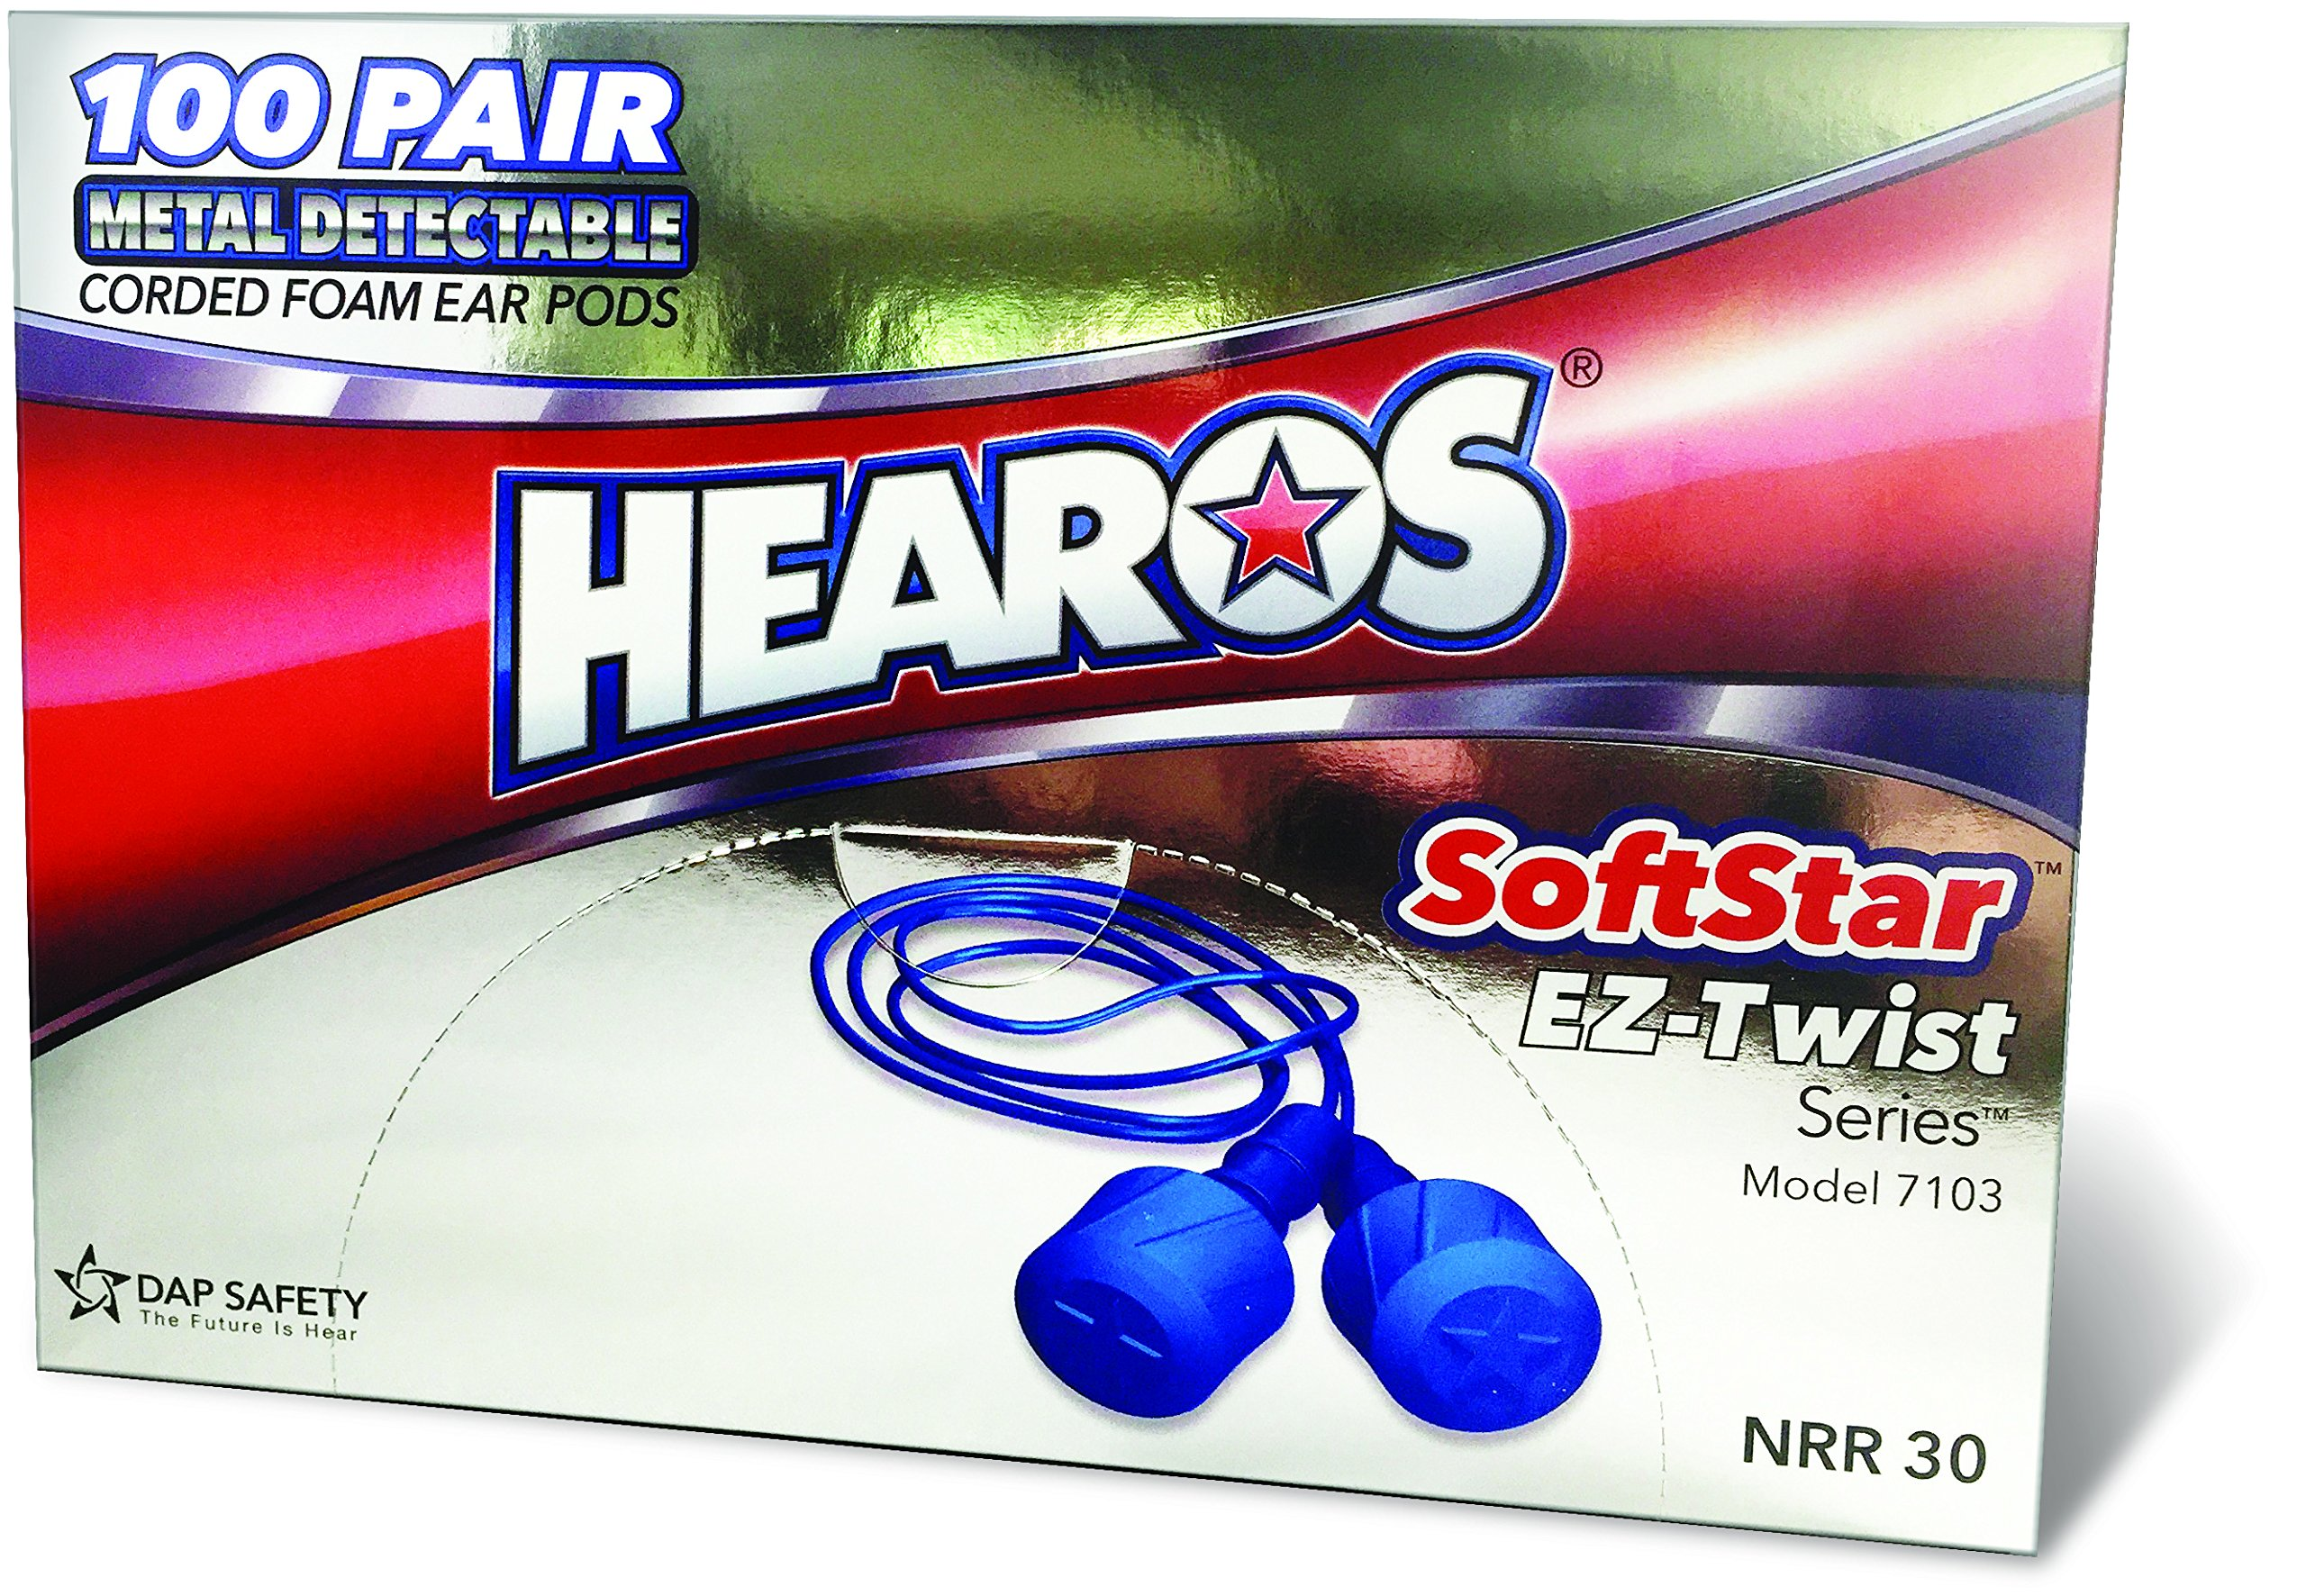 "HEAROS Metal Detectable SoftStar EZ Twist Series ""Hybrid"" Foam Ear Plugs"